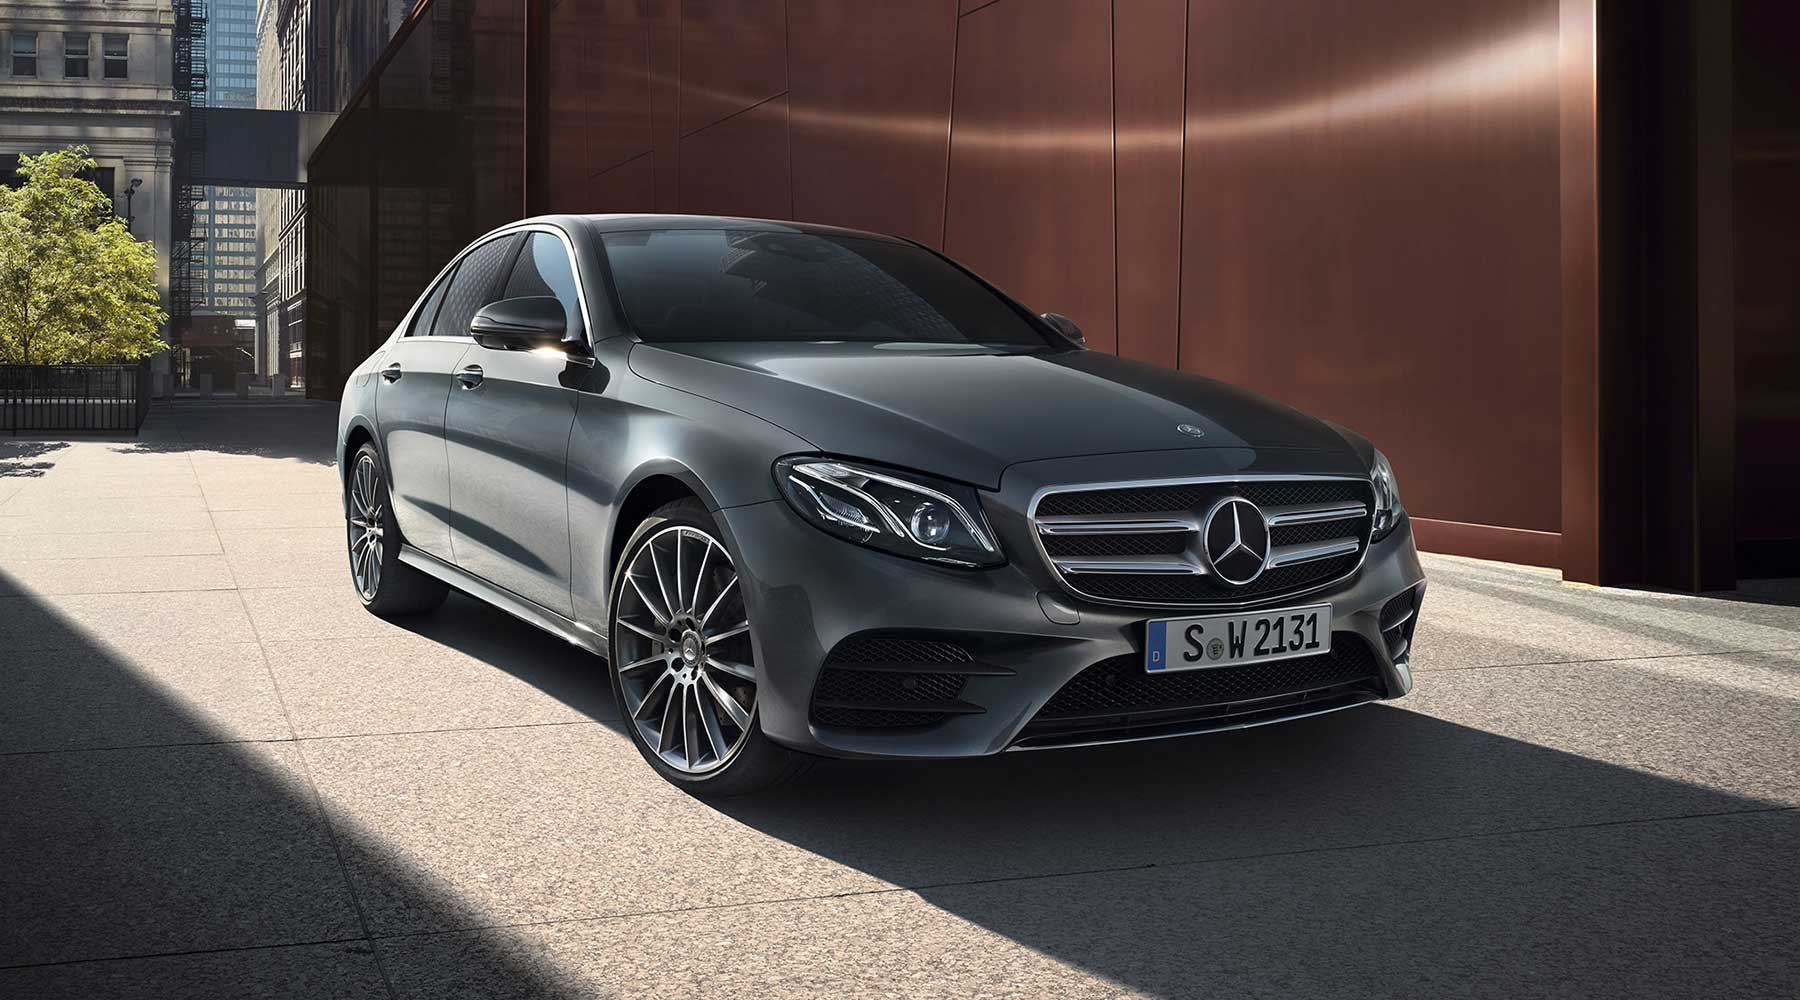 il class details center for chicago sale in at benz inventory e mercedes car